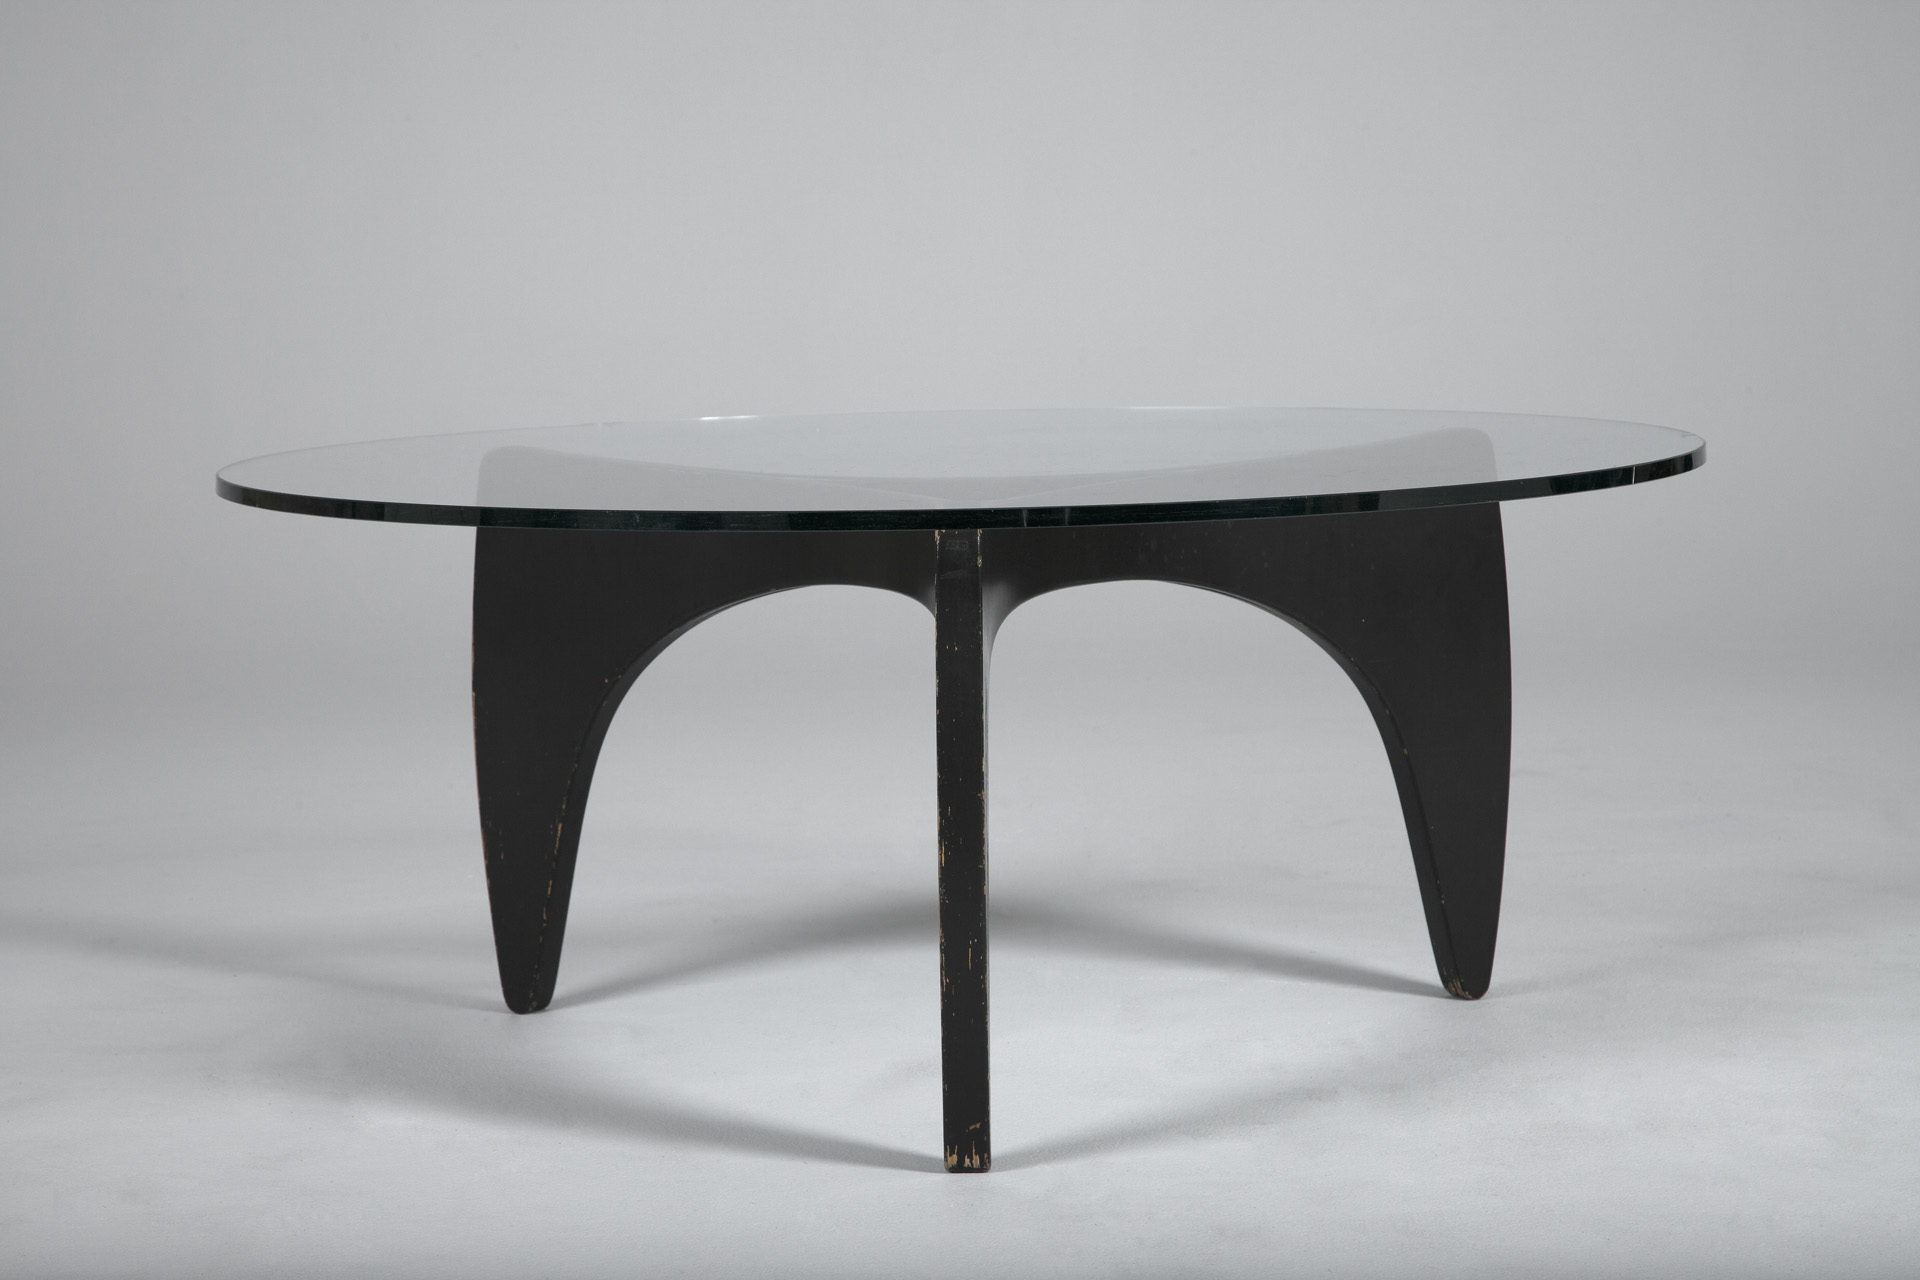 Jacksons Unique Coffee Table Poul Kjaerholm